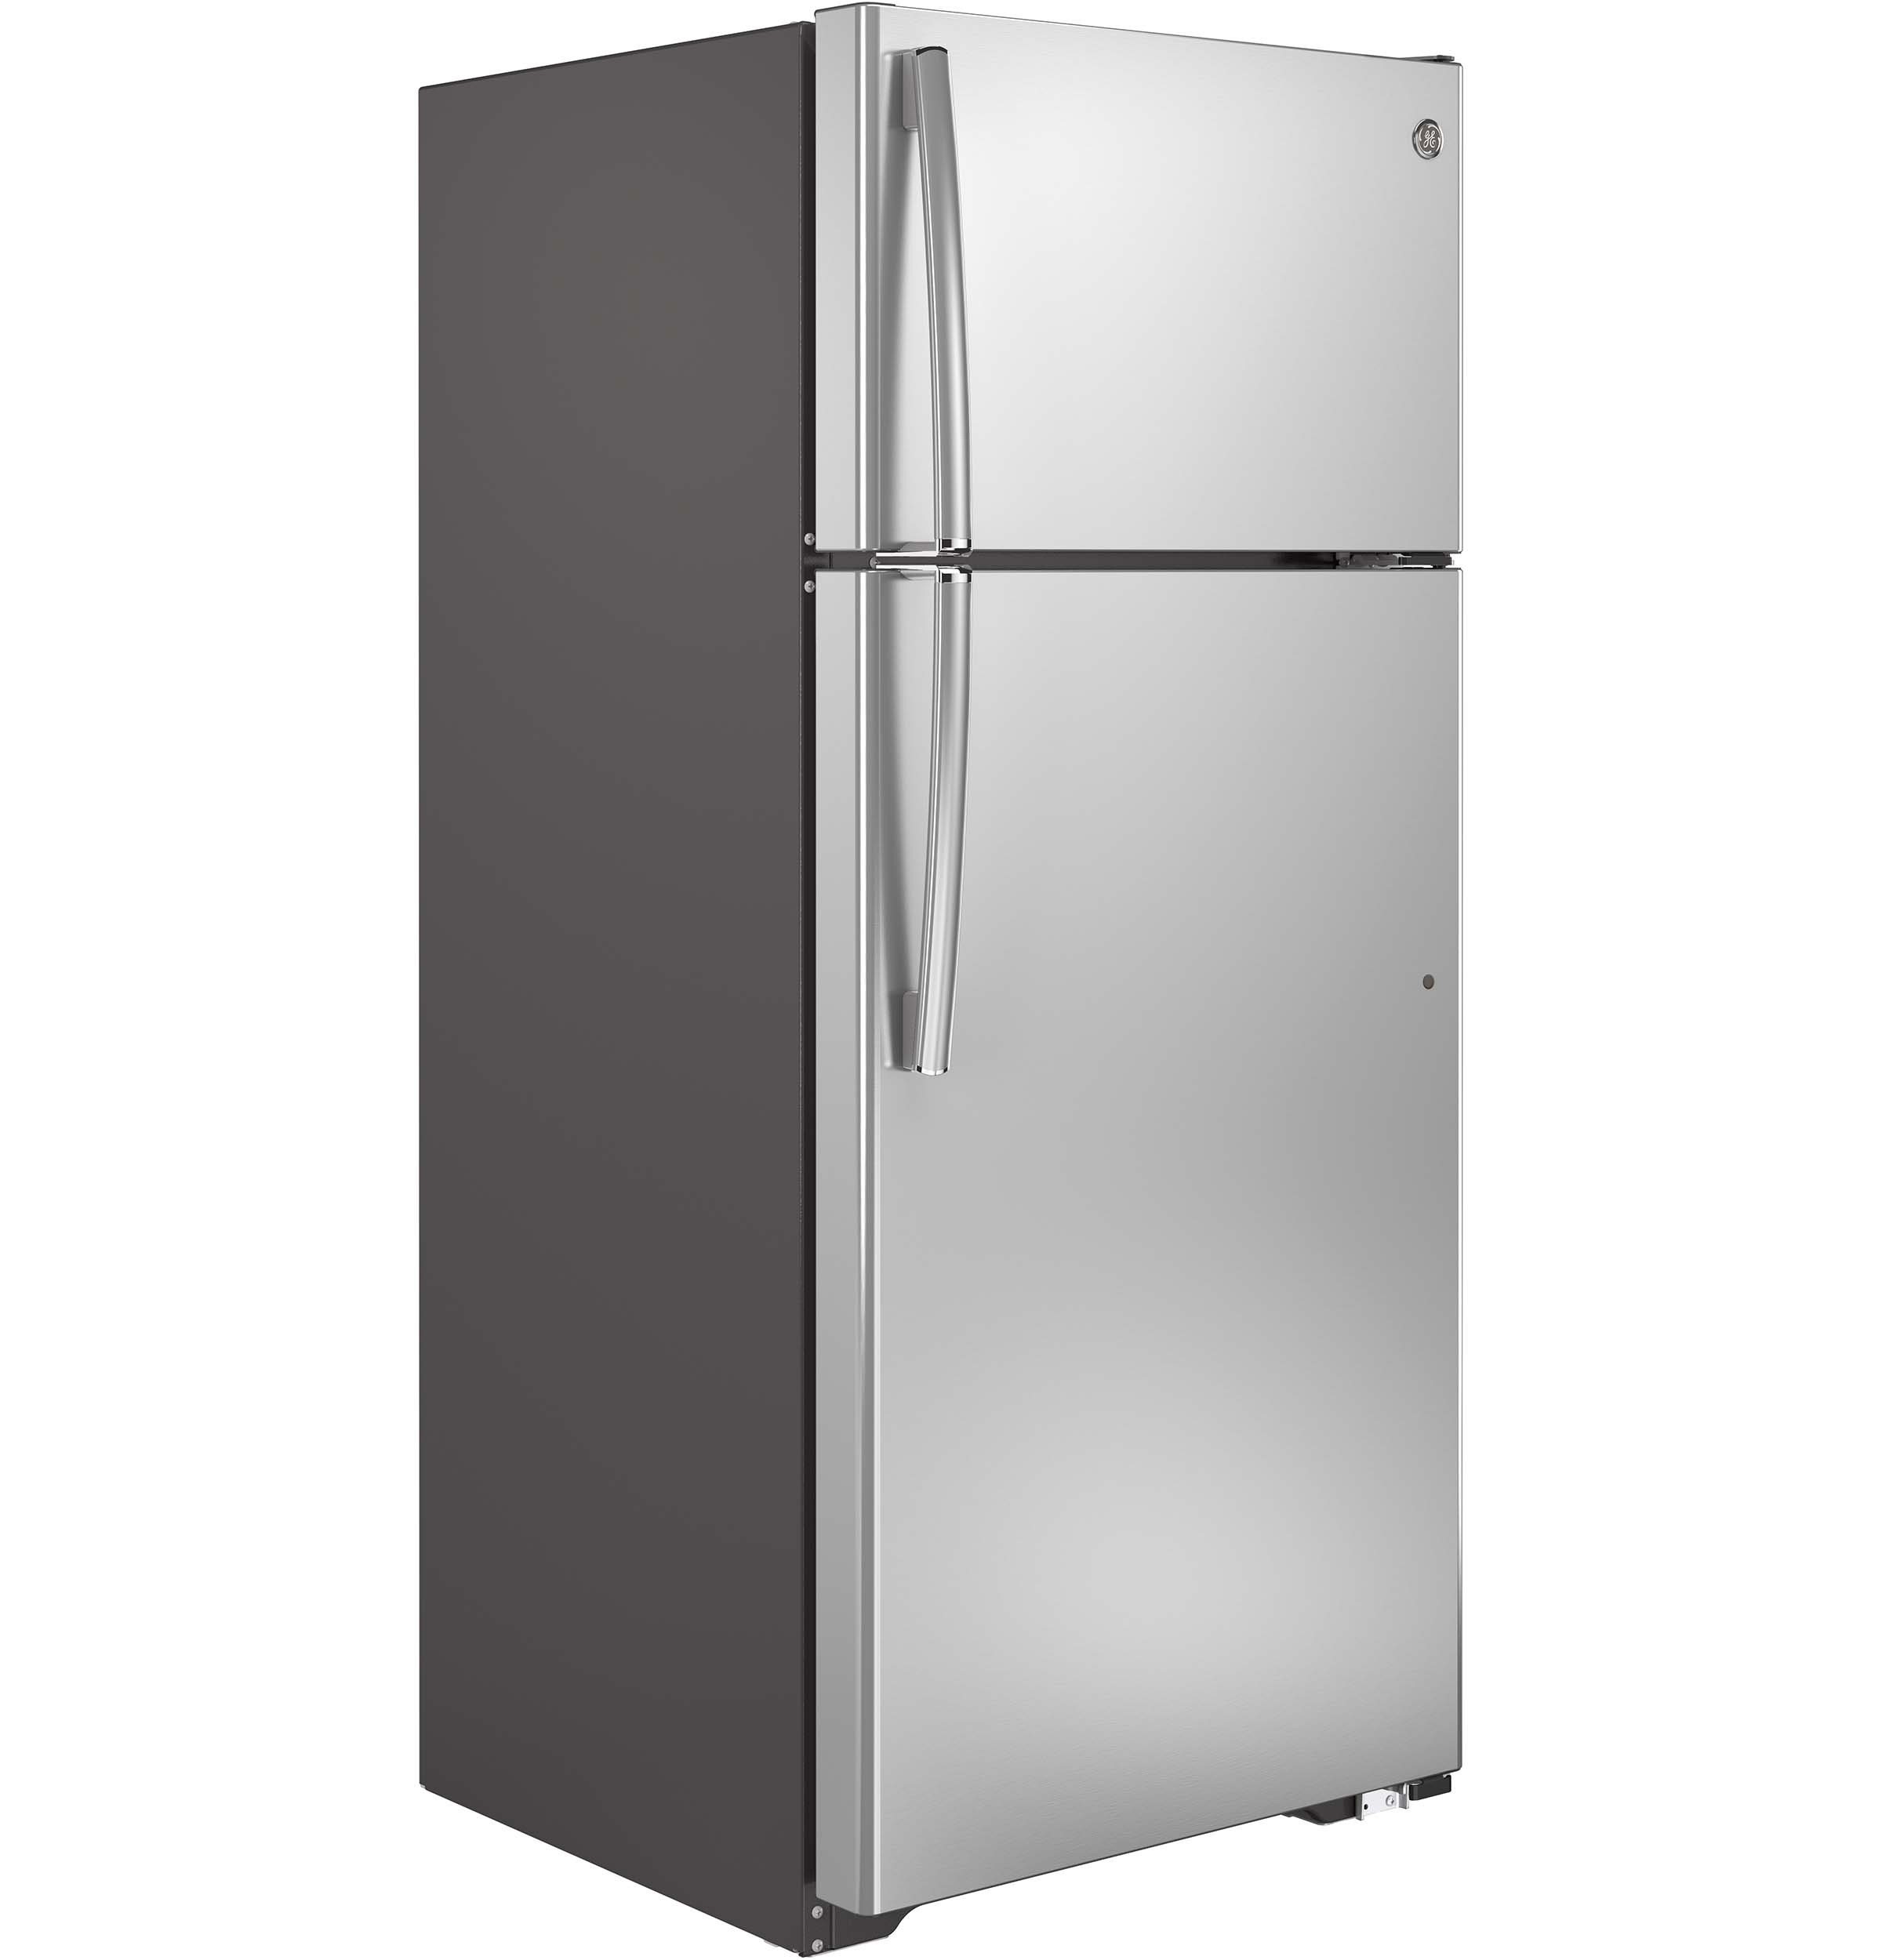 GE ENERGY STAR 17 5 Cu Ft Top Freezer Refrigerator